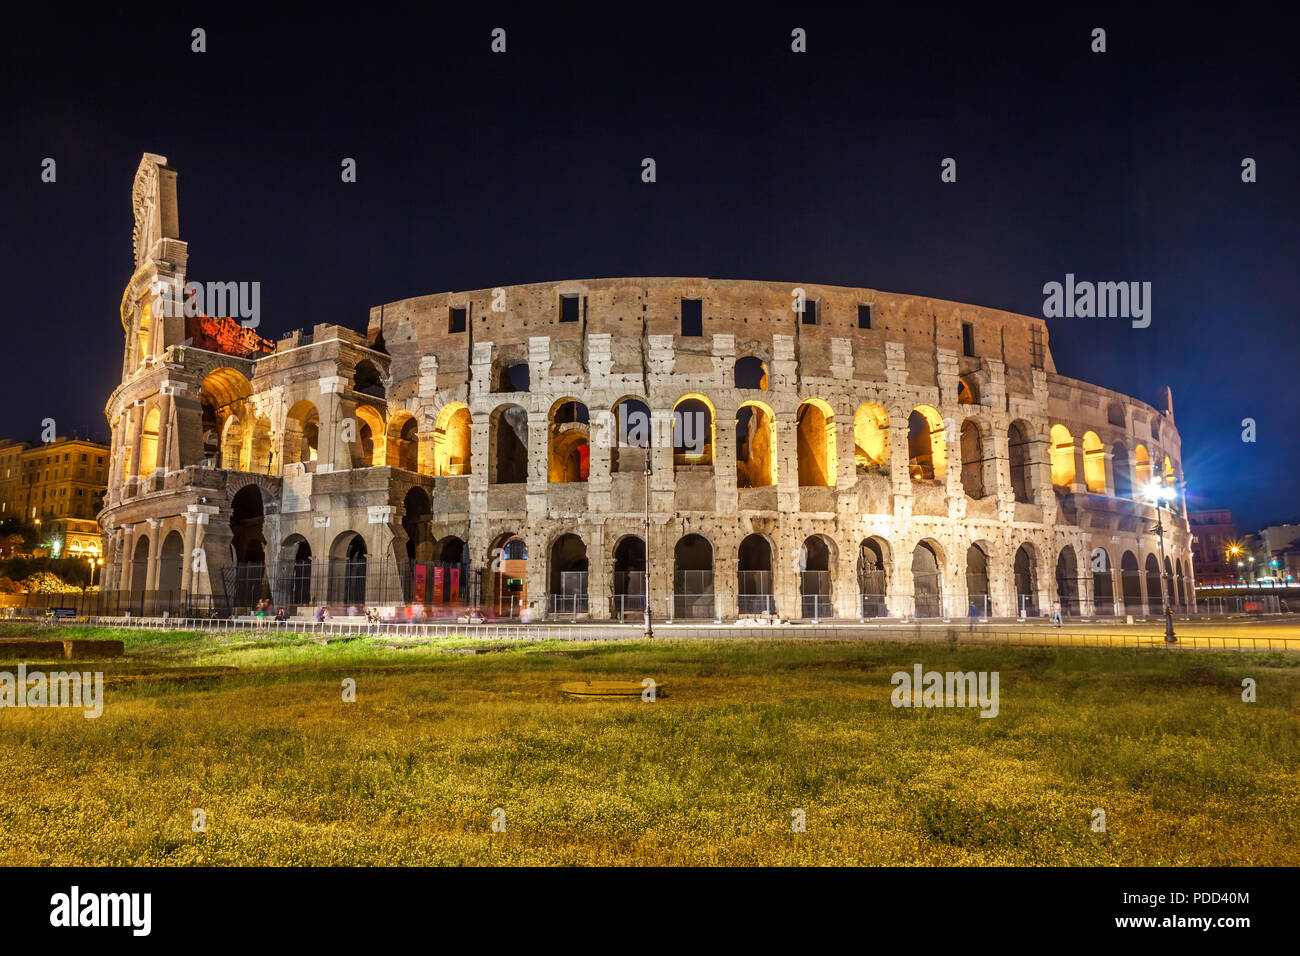 Roman Colosseum (Coliseum) at night, one of the main travel attractions in Rome. Italy. - Stock Image